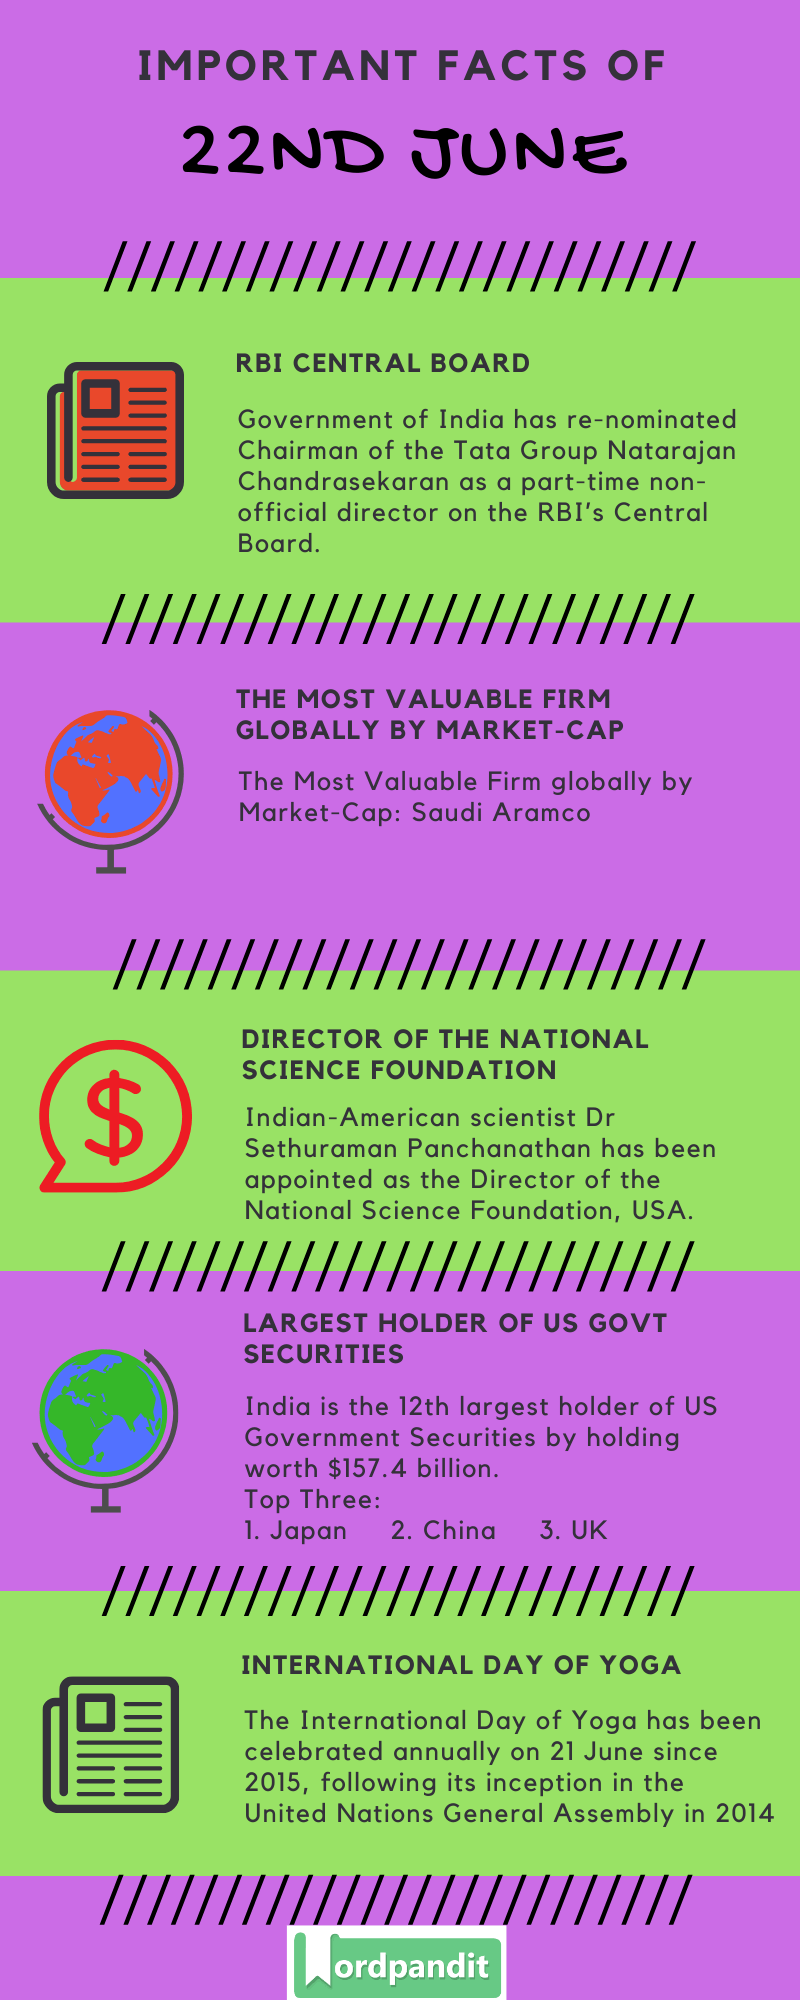 Daily Current Affairs 22nd June 2020 Current Affairs Quiz 22nd June 2020 Current Affairs Infographic